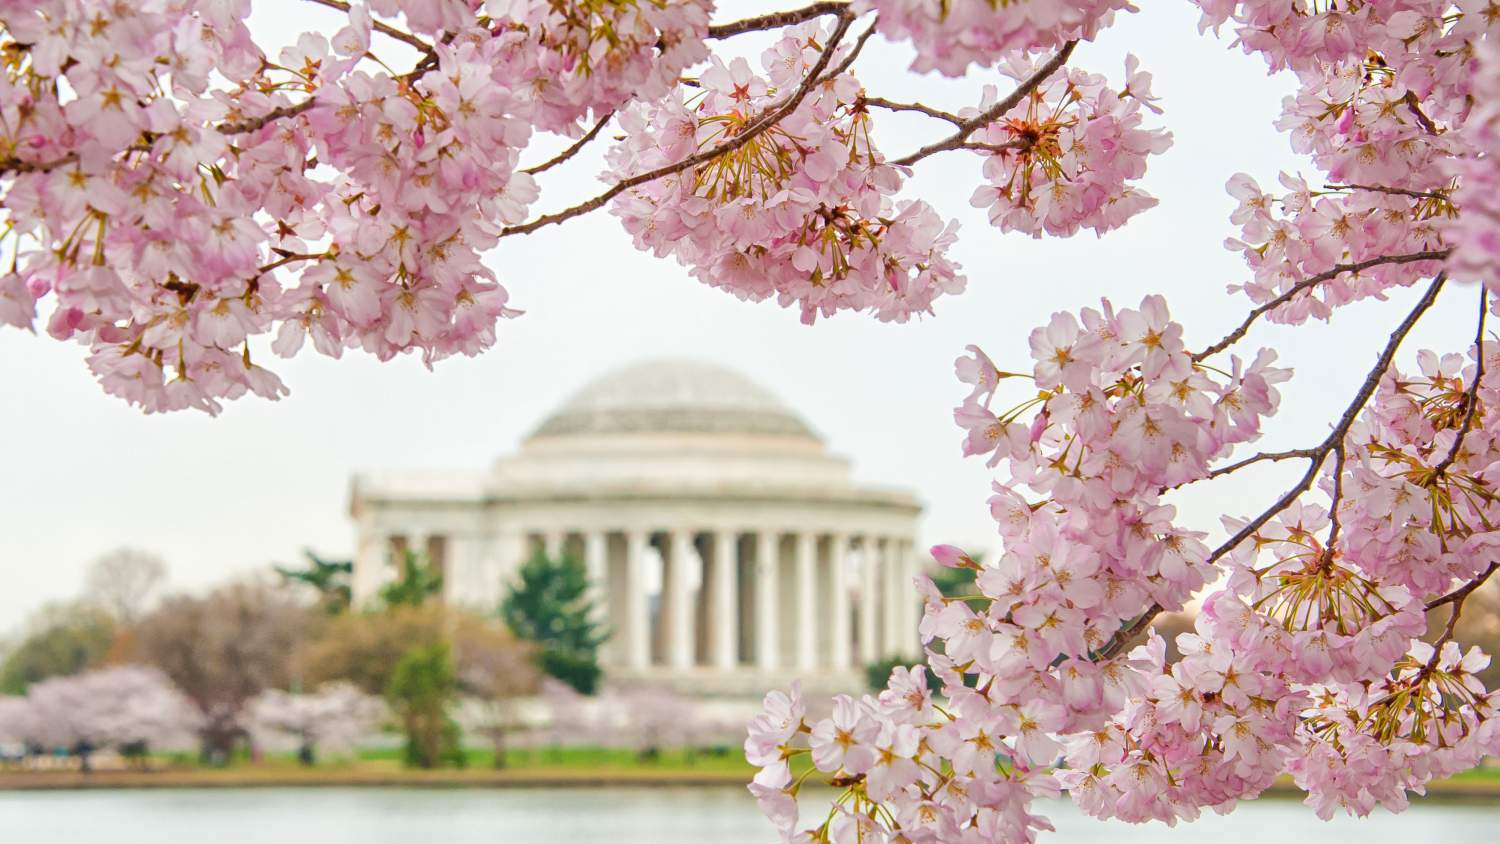 Cherry blossoms blooming near the Jefferson Memorial